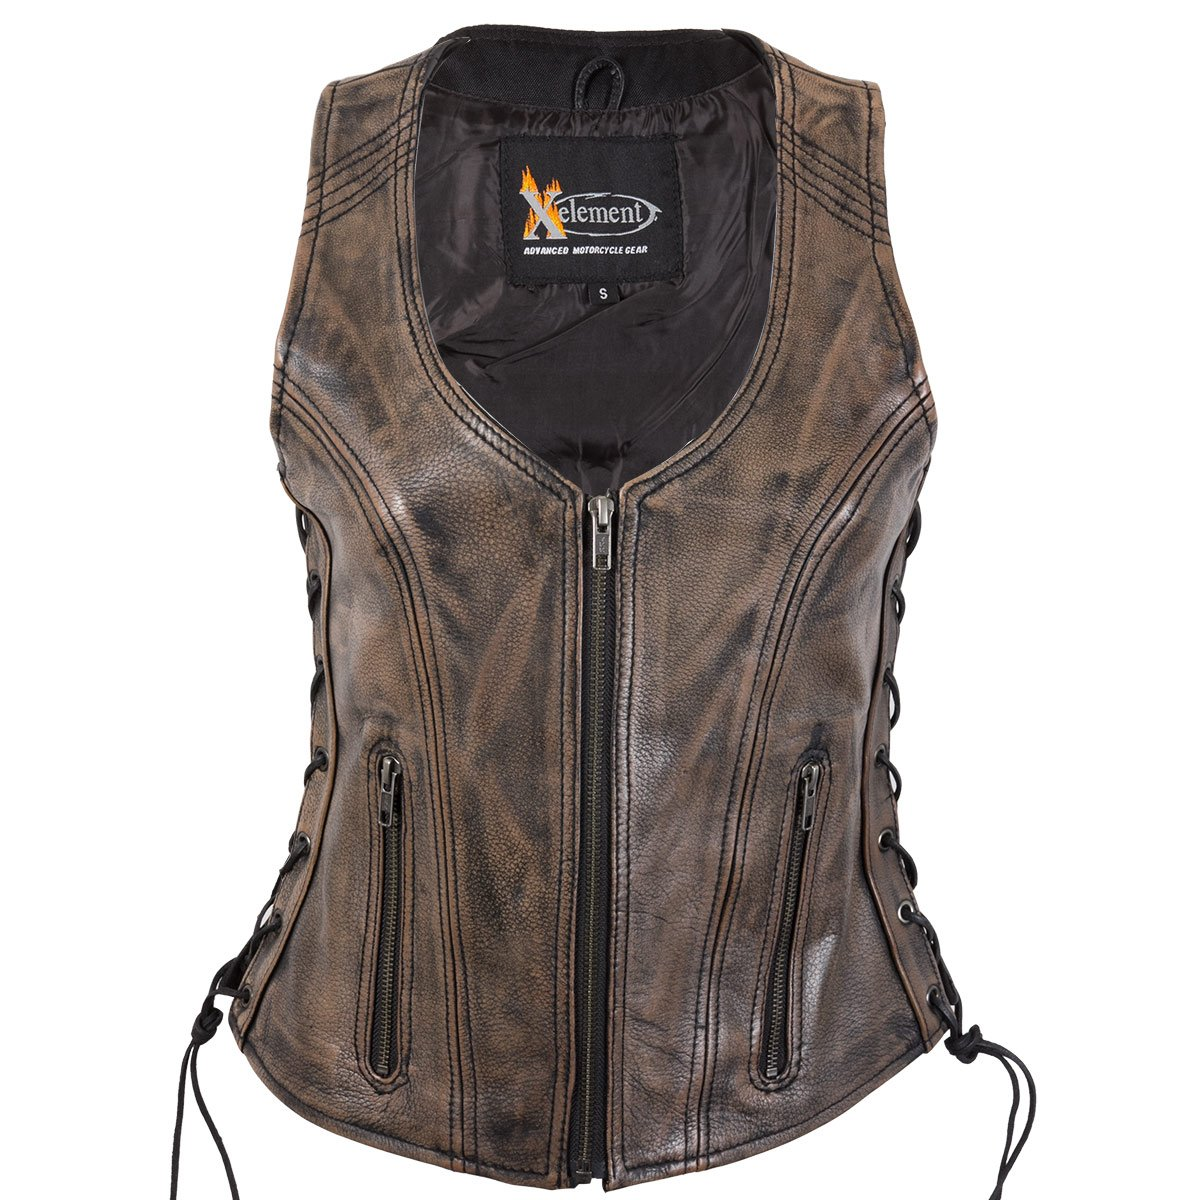 Xelement XS3900 Ladies Distress Brown Leather Vest with Side Adjustable Laces a - 2X-Large